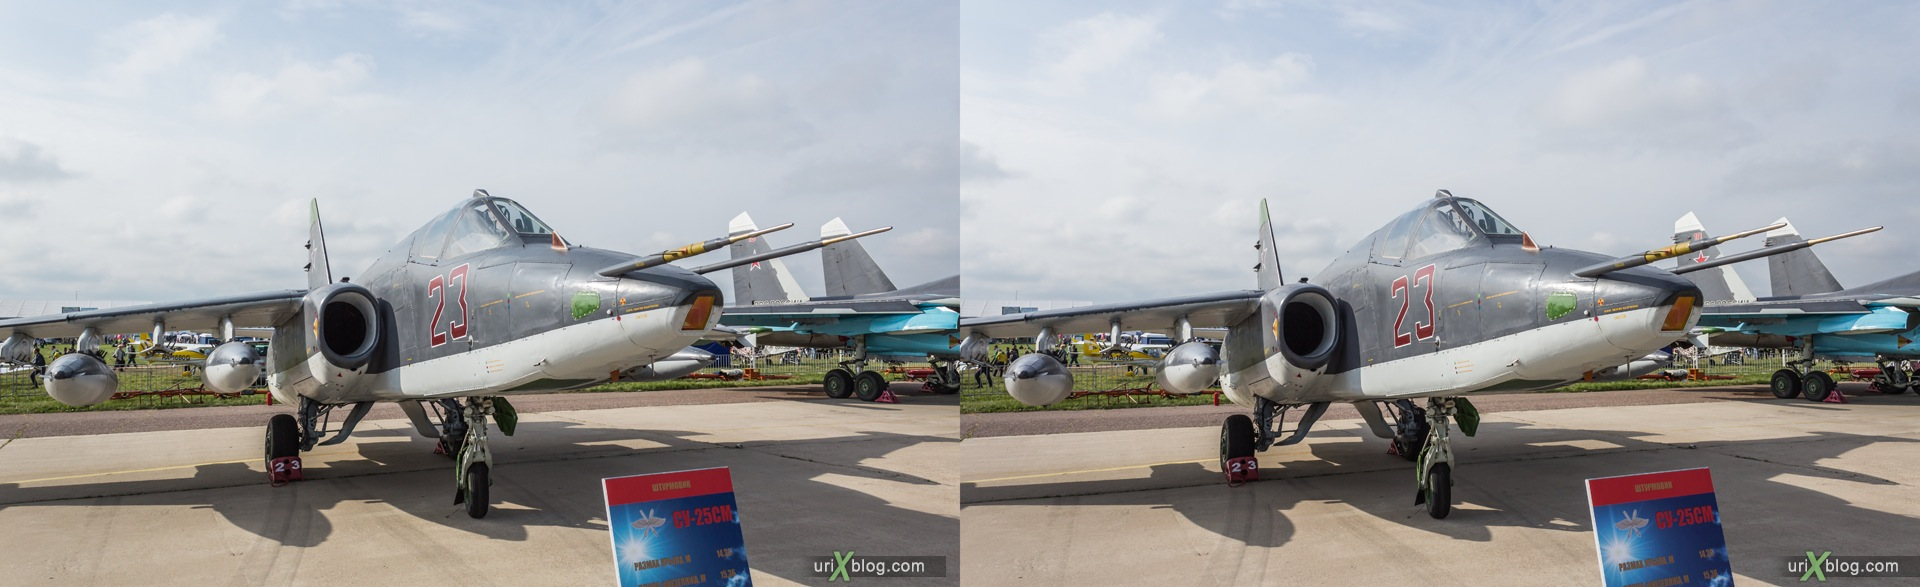 2013, Su-25SM, MAKS, International Aviation and Space Salon, Russia, Soviet, USSR, Ramenskoye airfield, airplane, 3D, stereo pair, cross-eyed, crossview, cross view stereo pair, stereoscopic